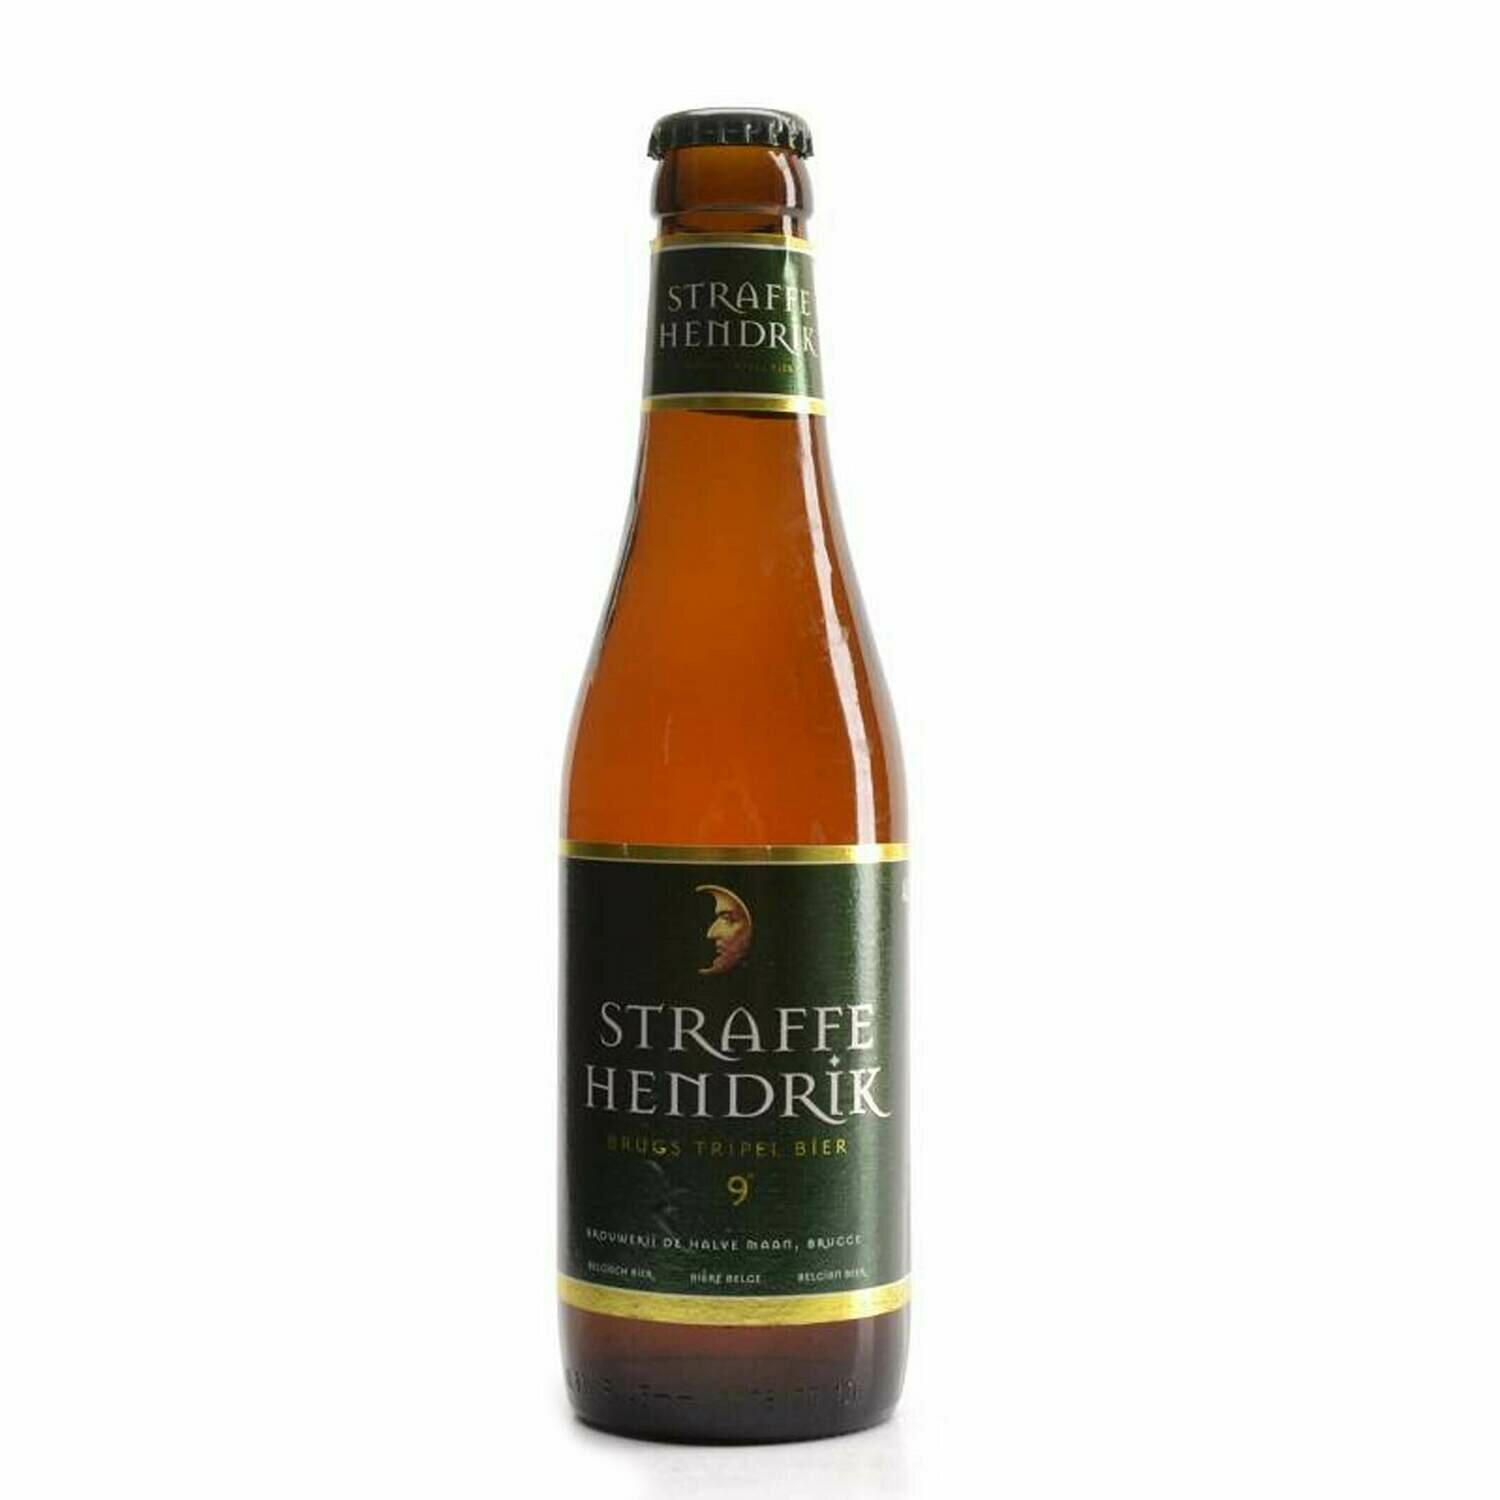 Straffe Hendrik 9 Tripel 330ml